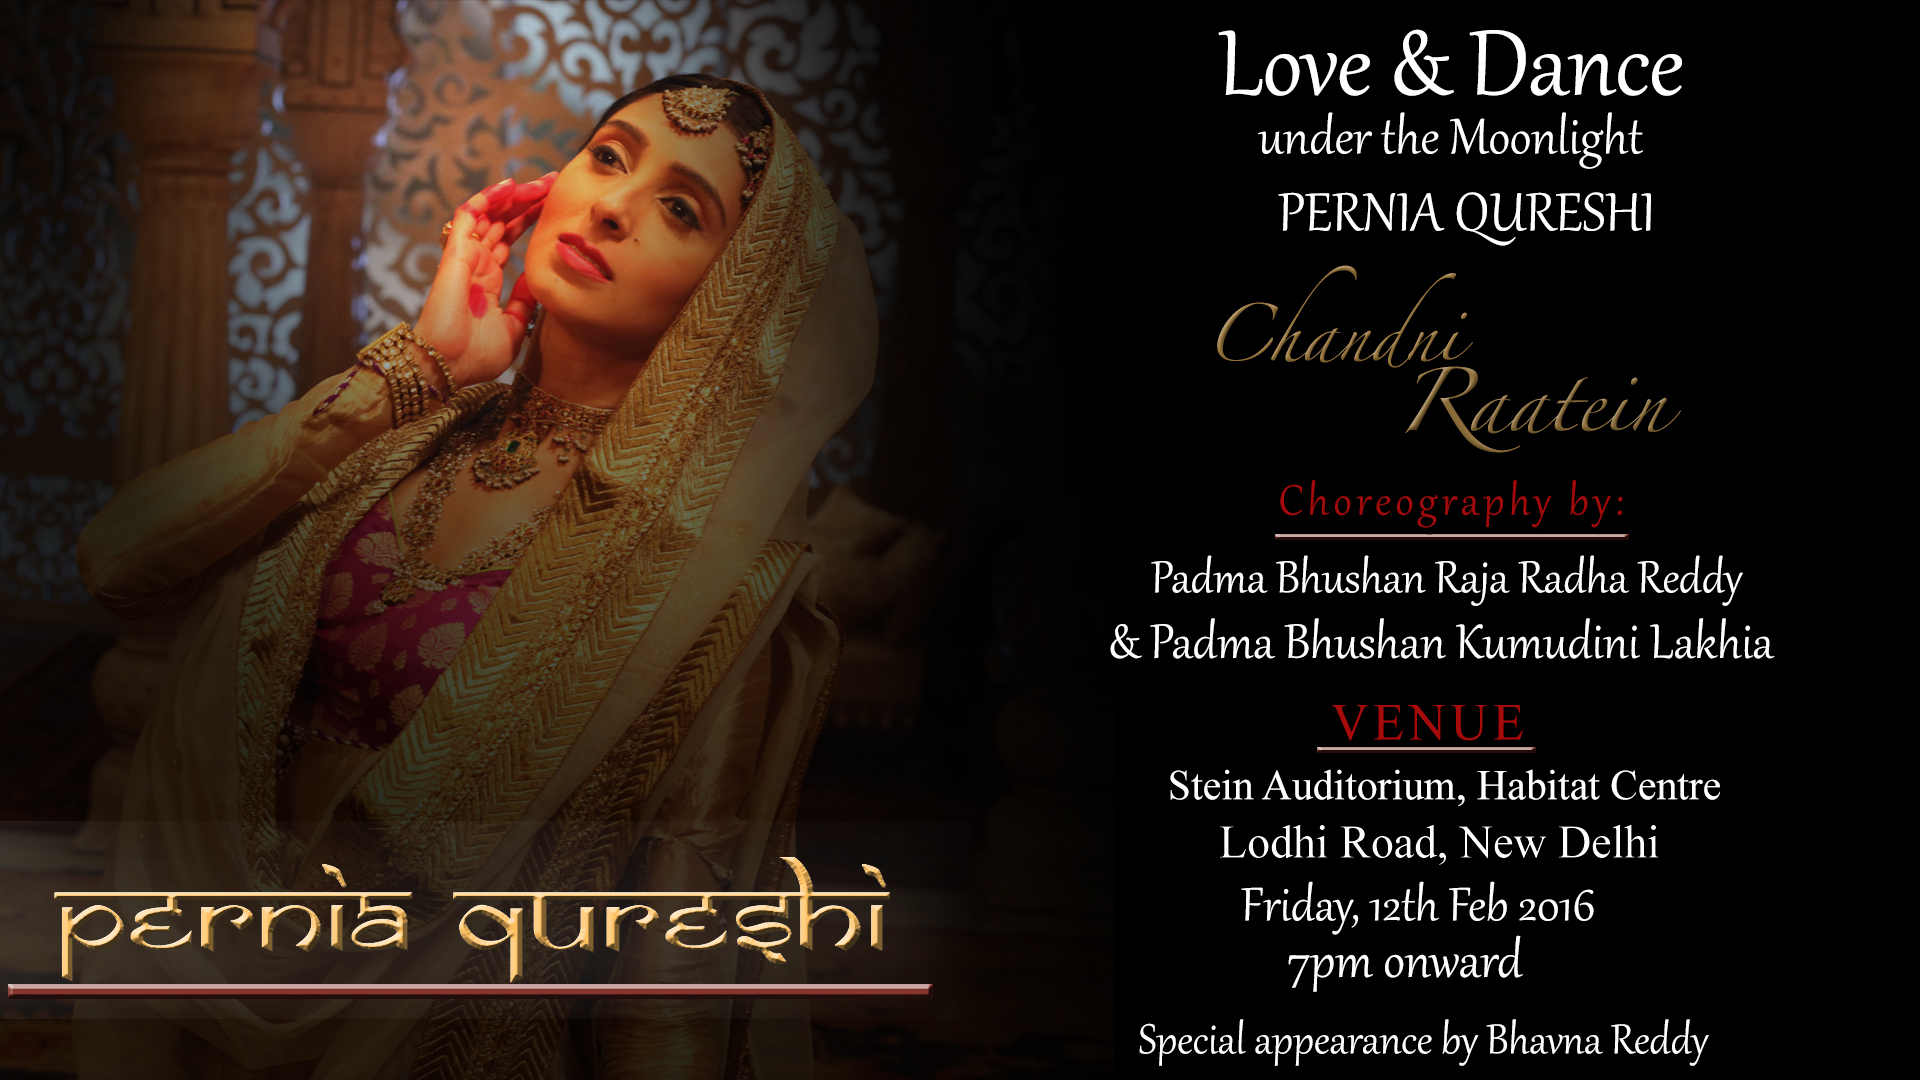 Chandni Raatein-Love and dance under the moonlight with Pernia Qureshi